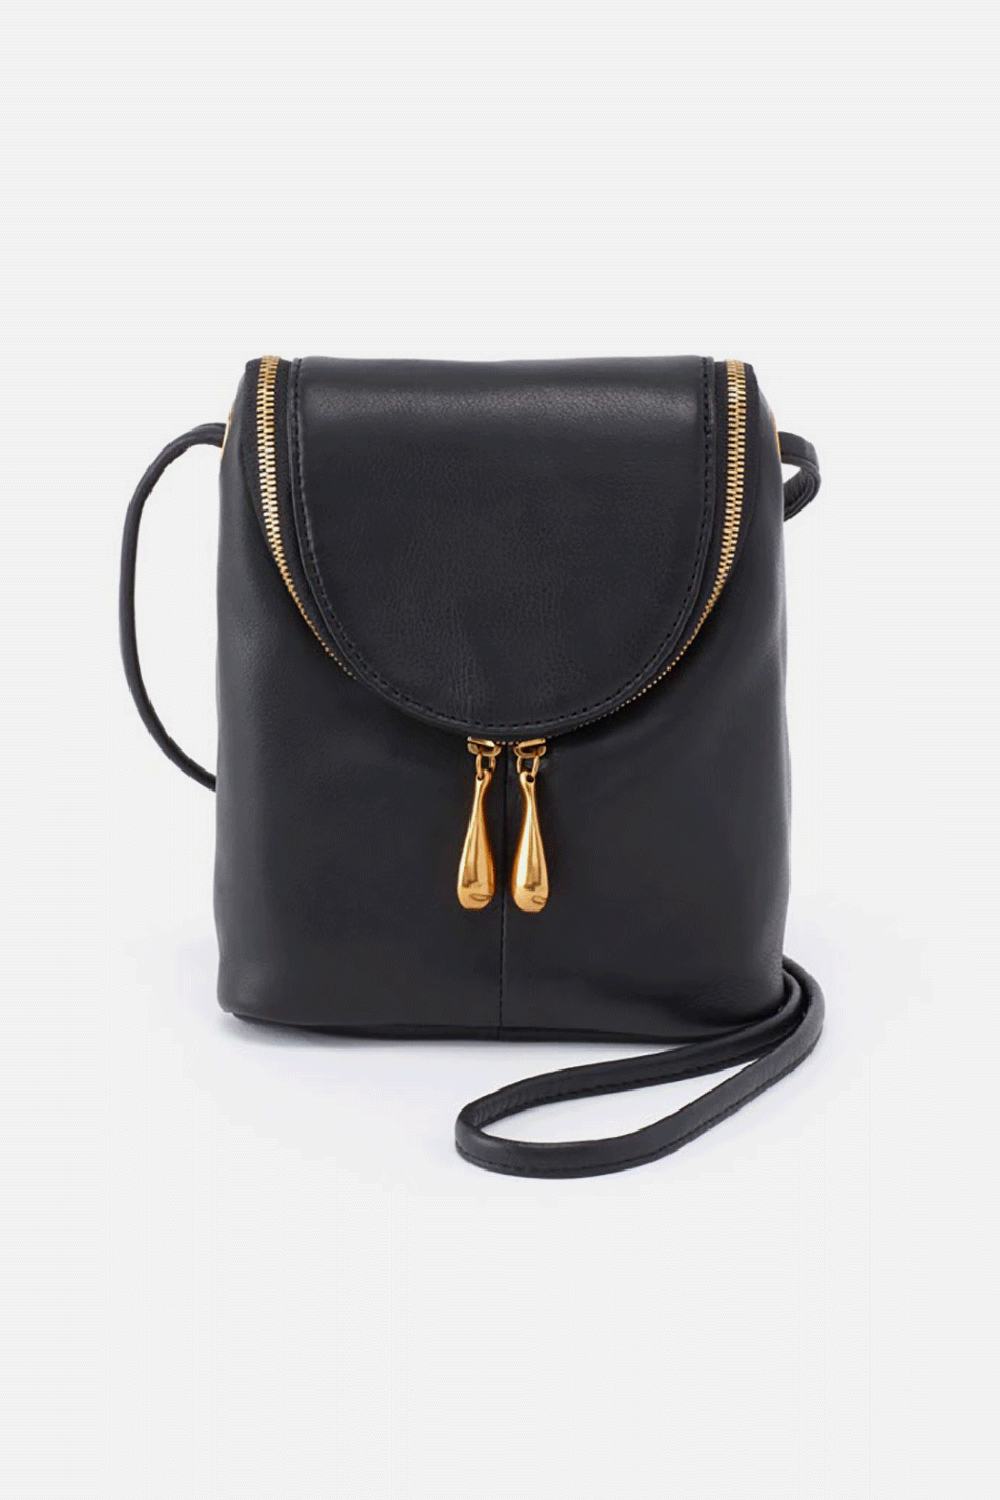 Fern Crossbody Purse - Black